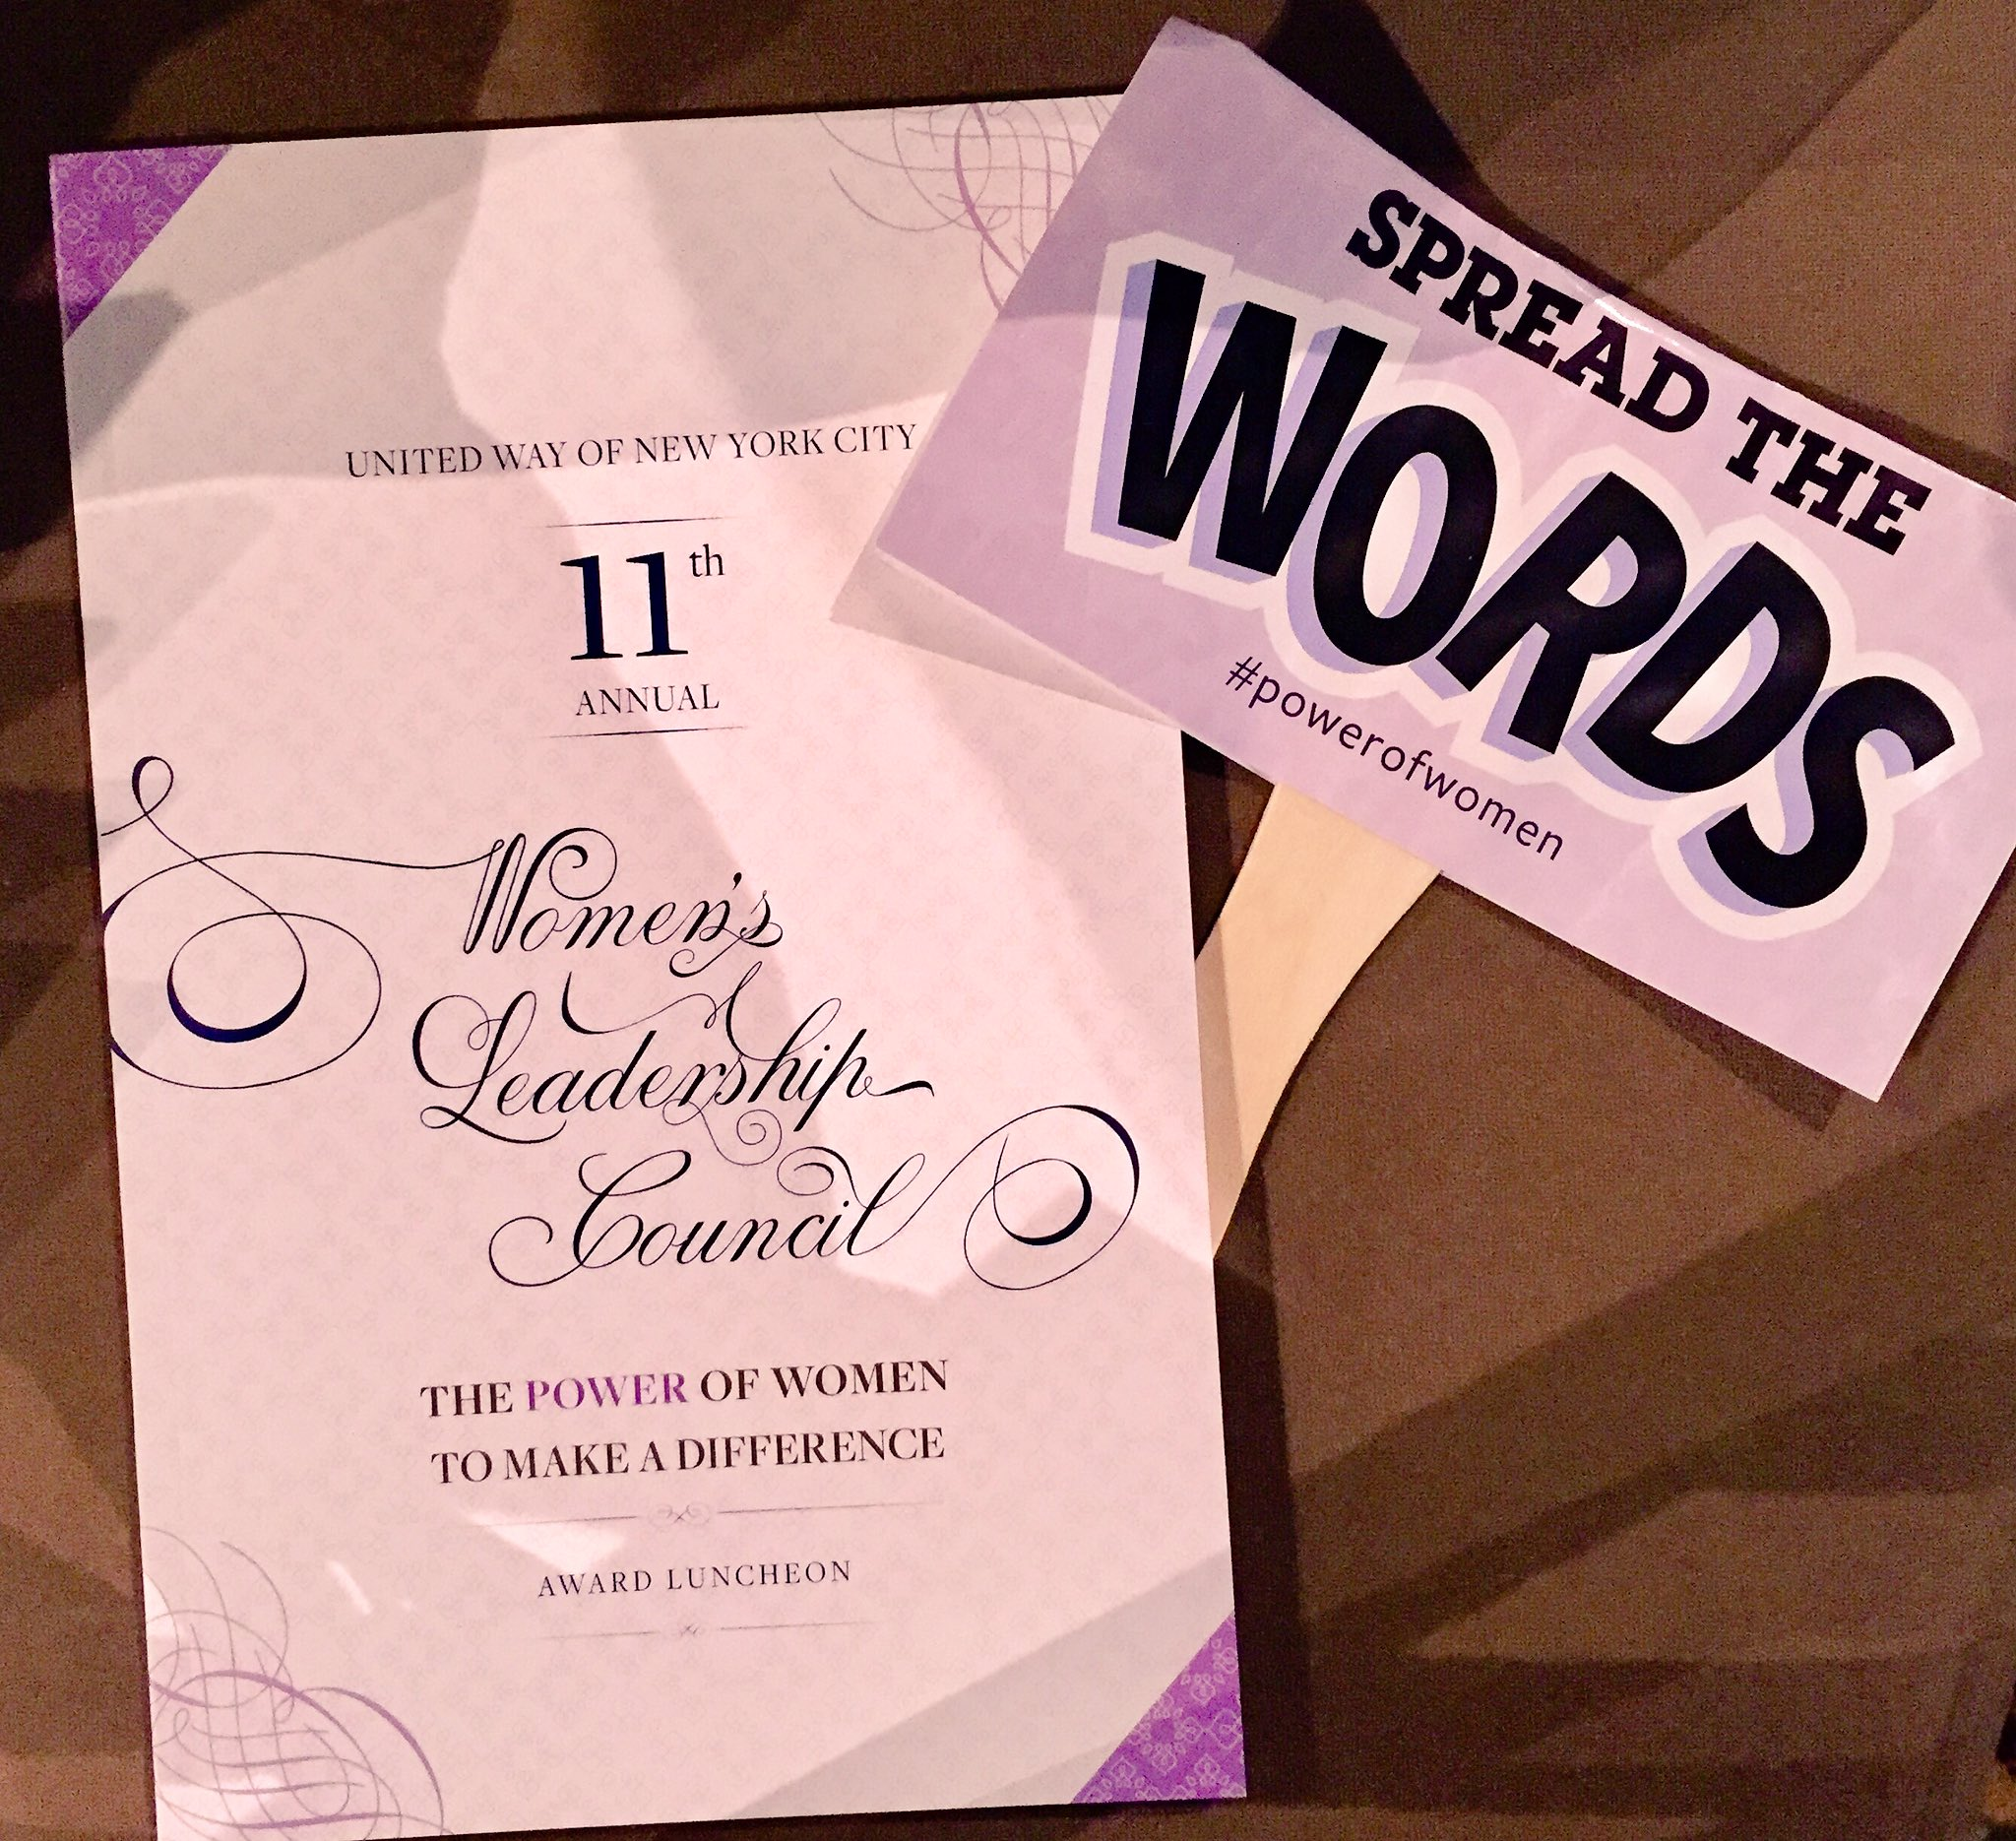 #PowerofWomen show us what word has a made a difference in your life! Take a #selfie with #SpreadTheWords now! Let's see 'em! https://t.co/cDqdv9NBON